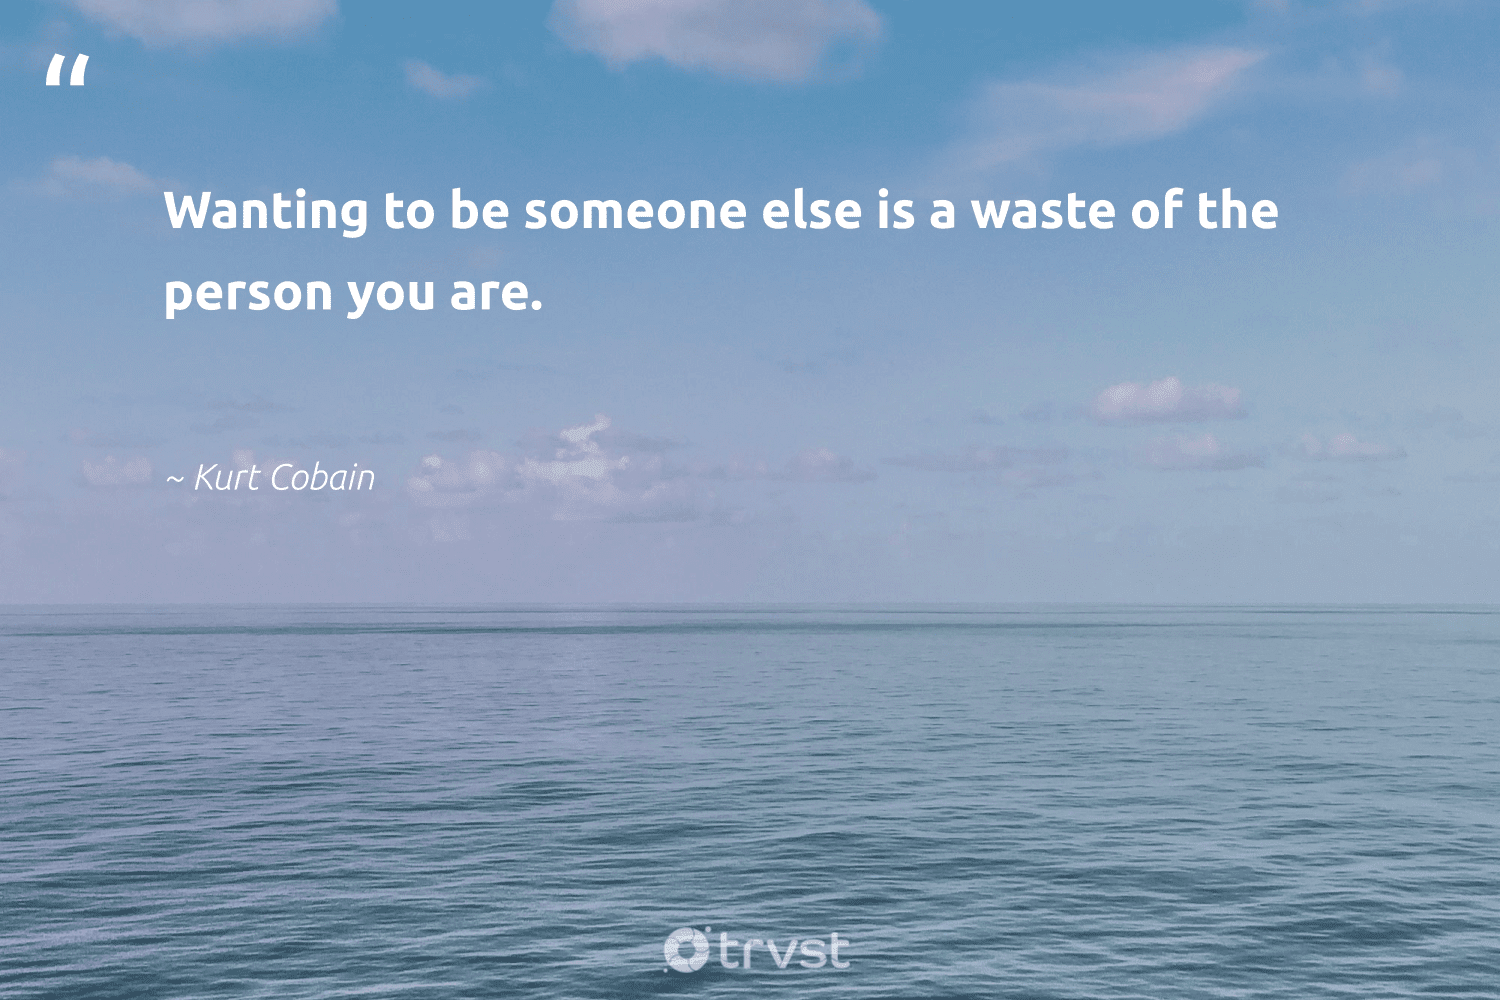 """Wanting to be someone else is a waste of the person you are.""  - Kurt Cobain #trvst #quotes #waste #begreat #bethechange #nevergiveup #gogreen #mindset #socialchange #changemakers #dosomething #health"